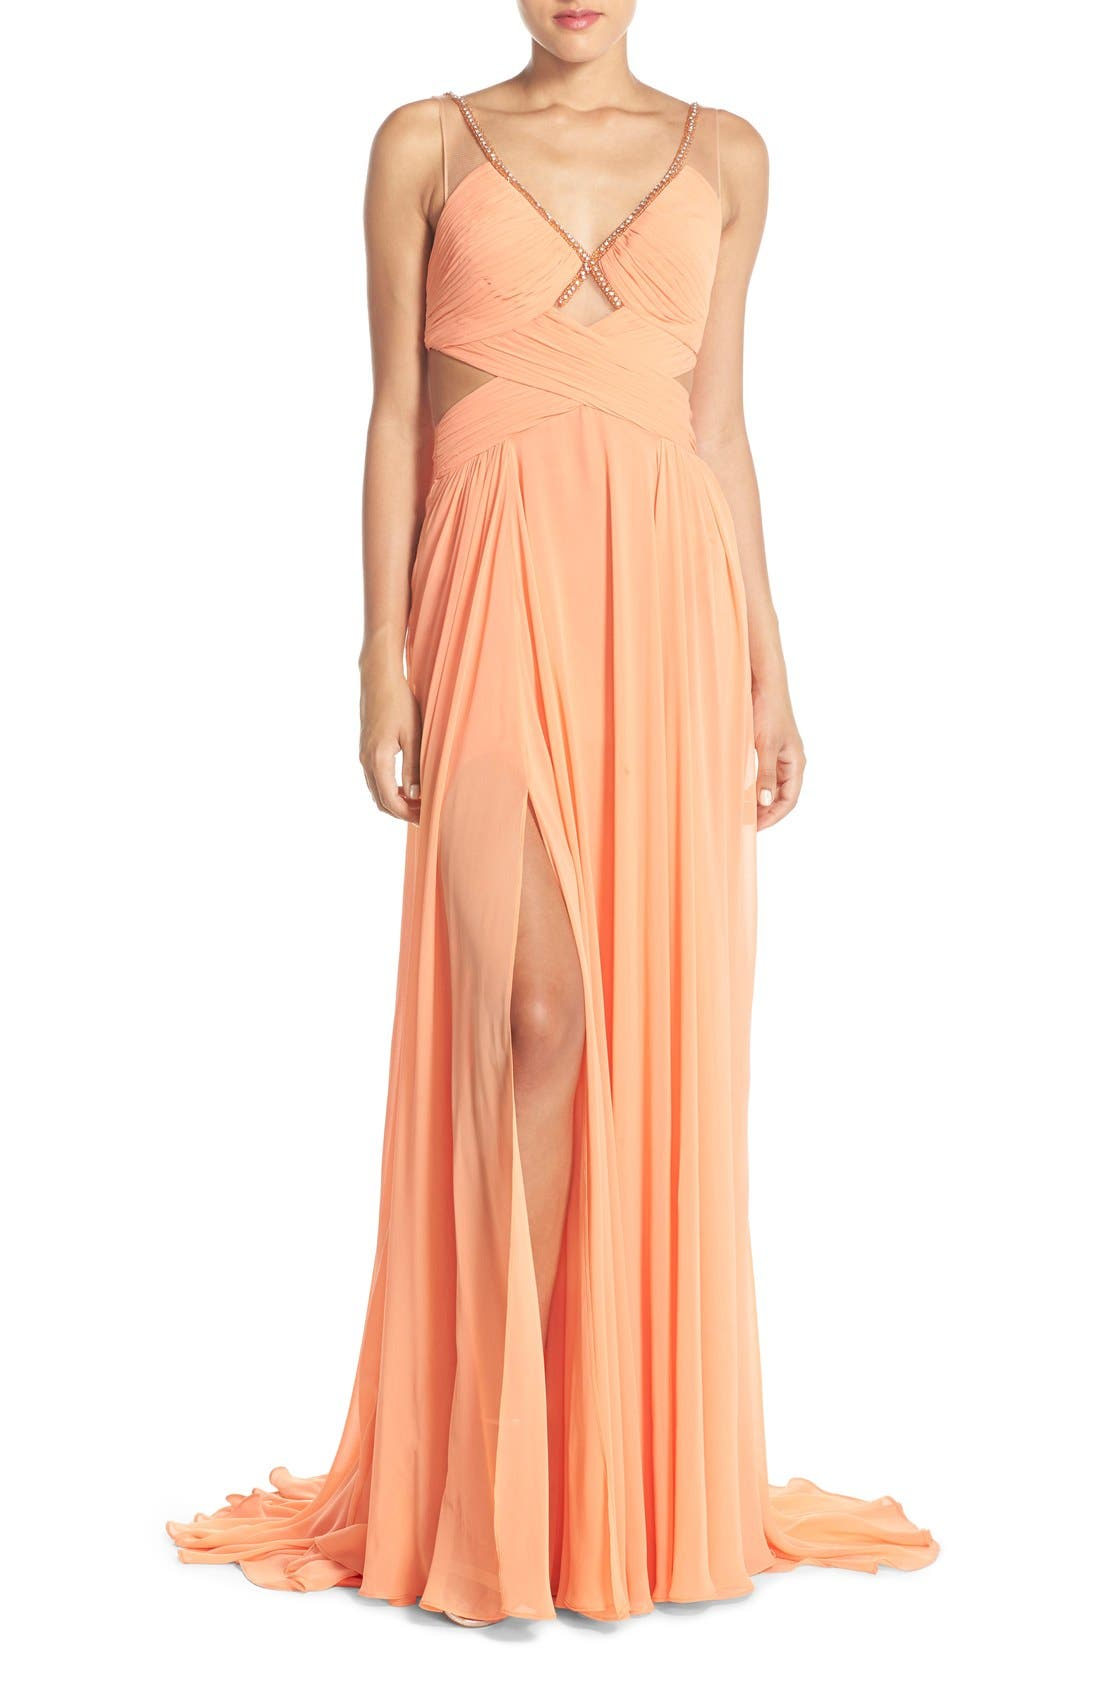 Alternate Image 1 Selected - Terani Couture Cutout Embellished Chiffon Gown